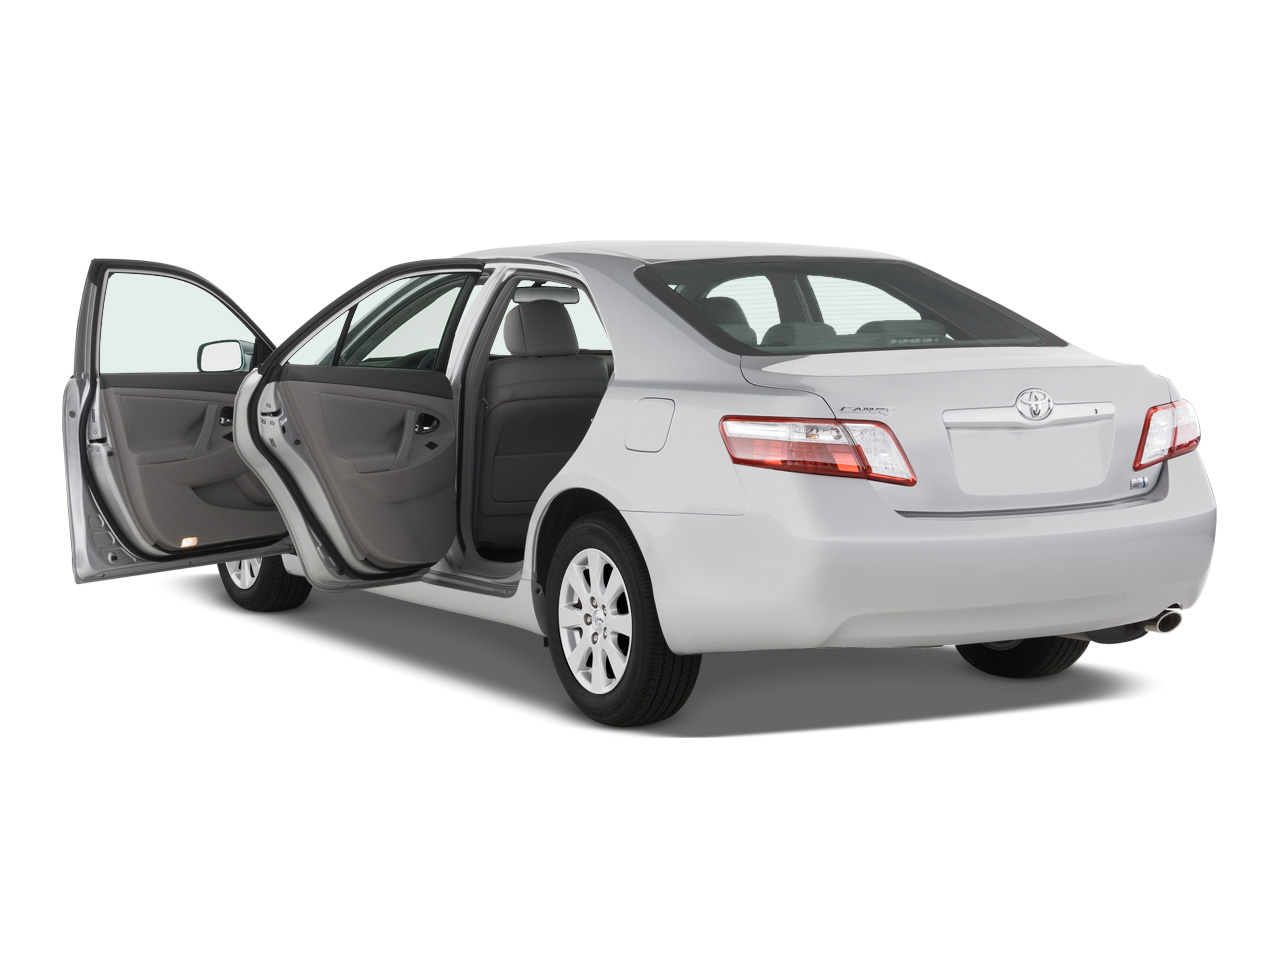 2007 toyota camry and camry hybrid lexus ls460 and ls460l 2006 naias detro. Black Bedroom Furniture Sets. Home Design Ideas